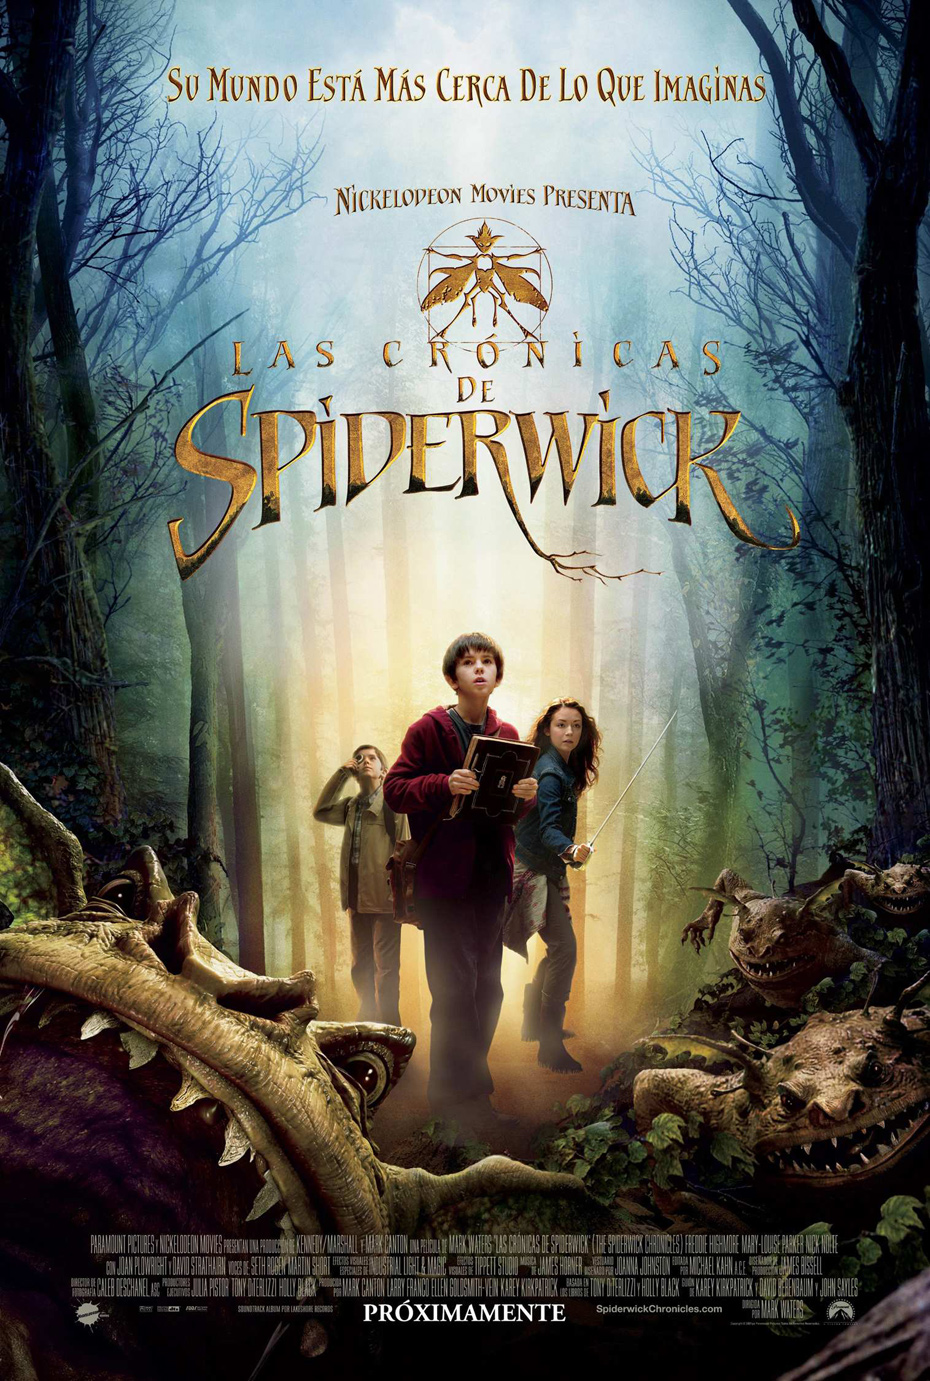 Las cr�nicas de Spiderwick